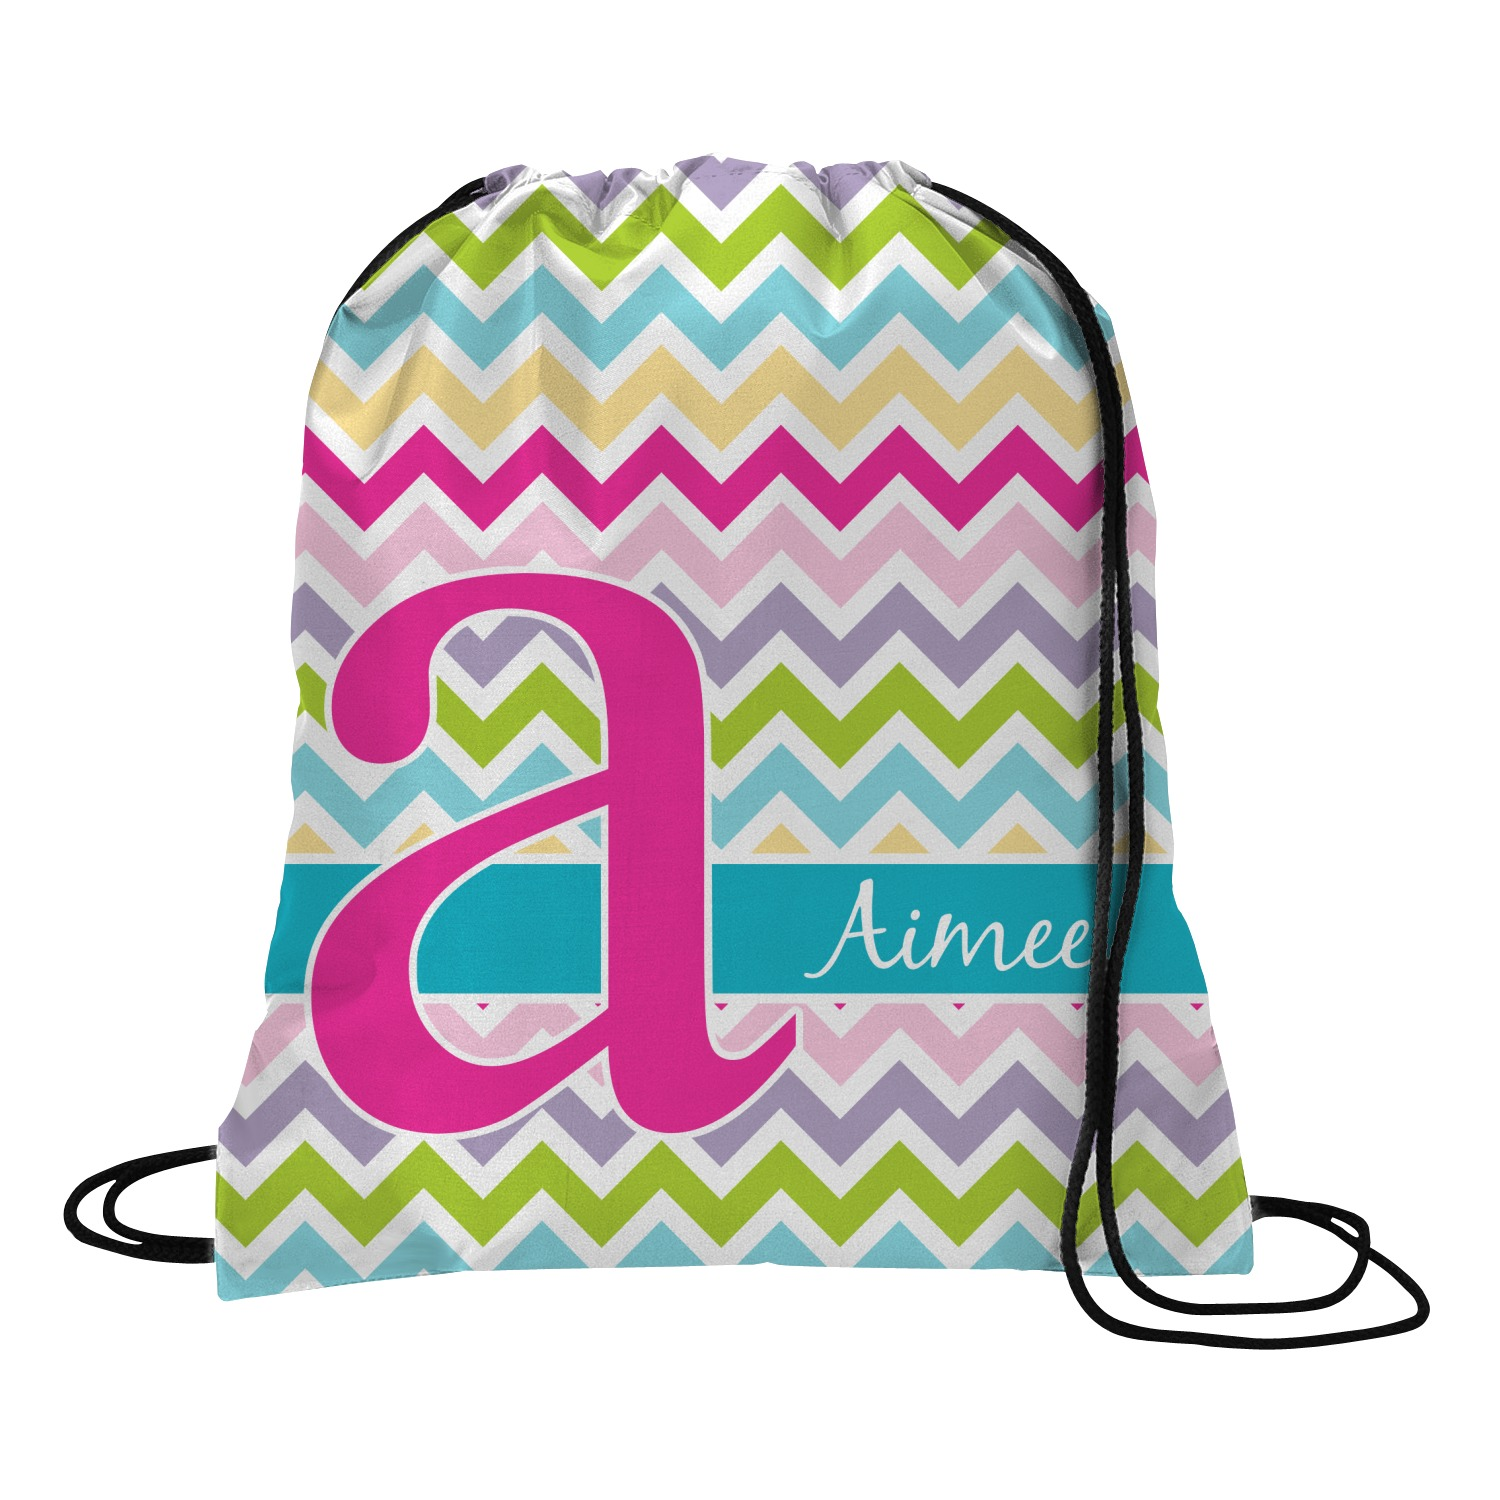 Drawstring Backpack Colorful Chevron Rucksack